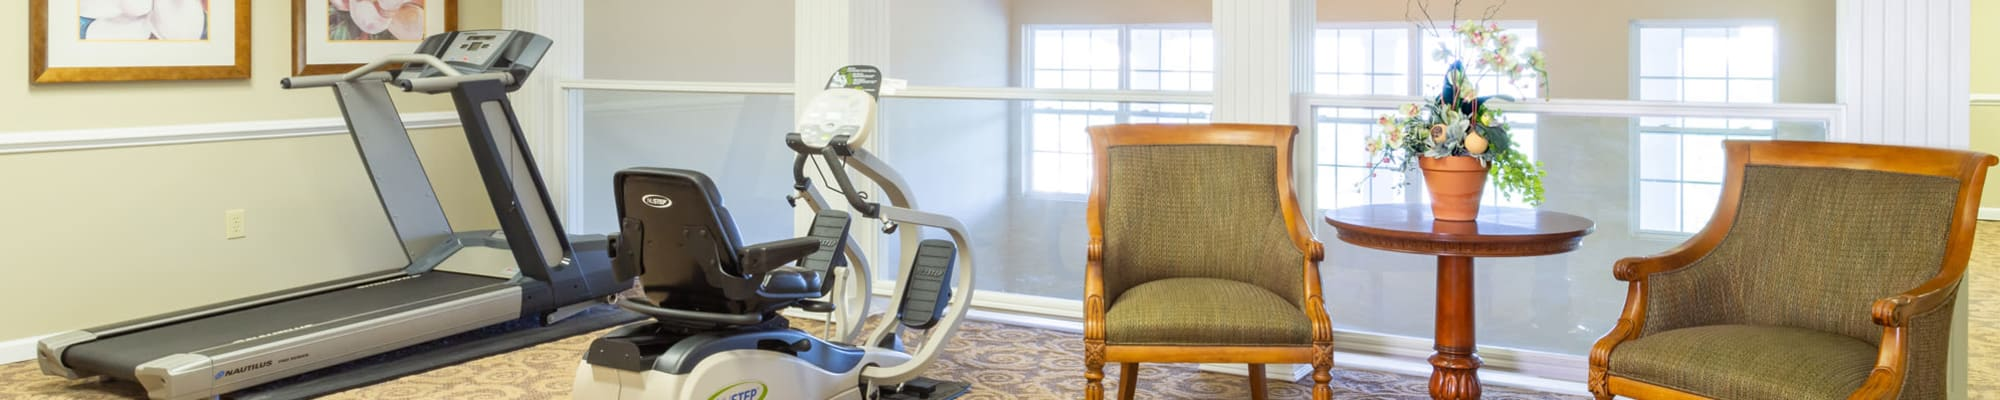 Services & Amenities at The Harmony Collection at Roanoke - Independent Living in Roanoke, Virginia